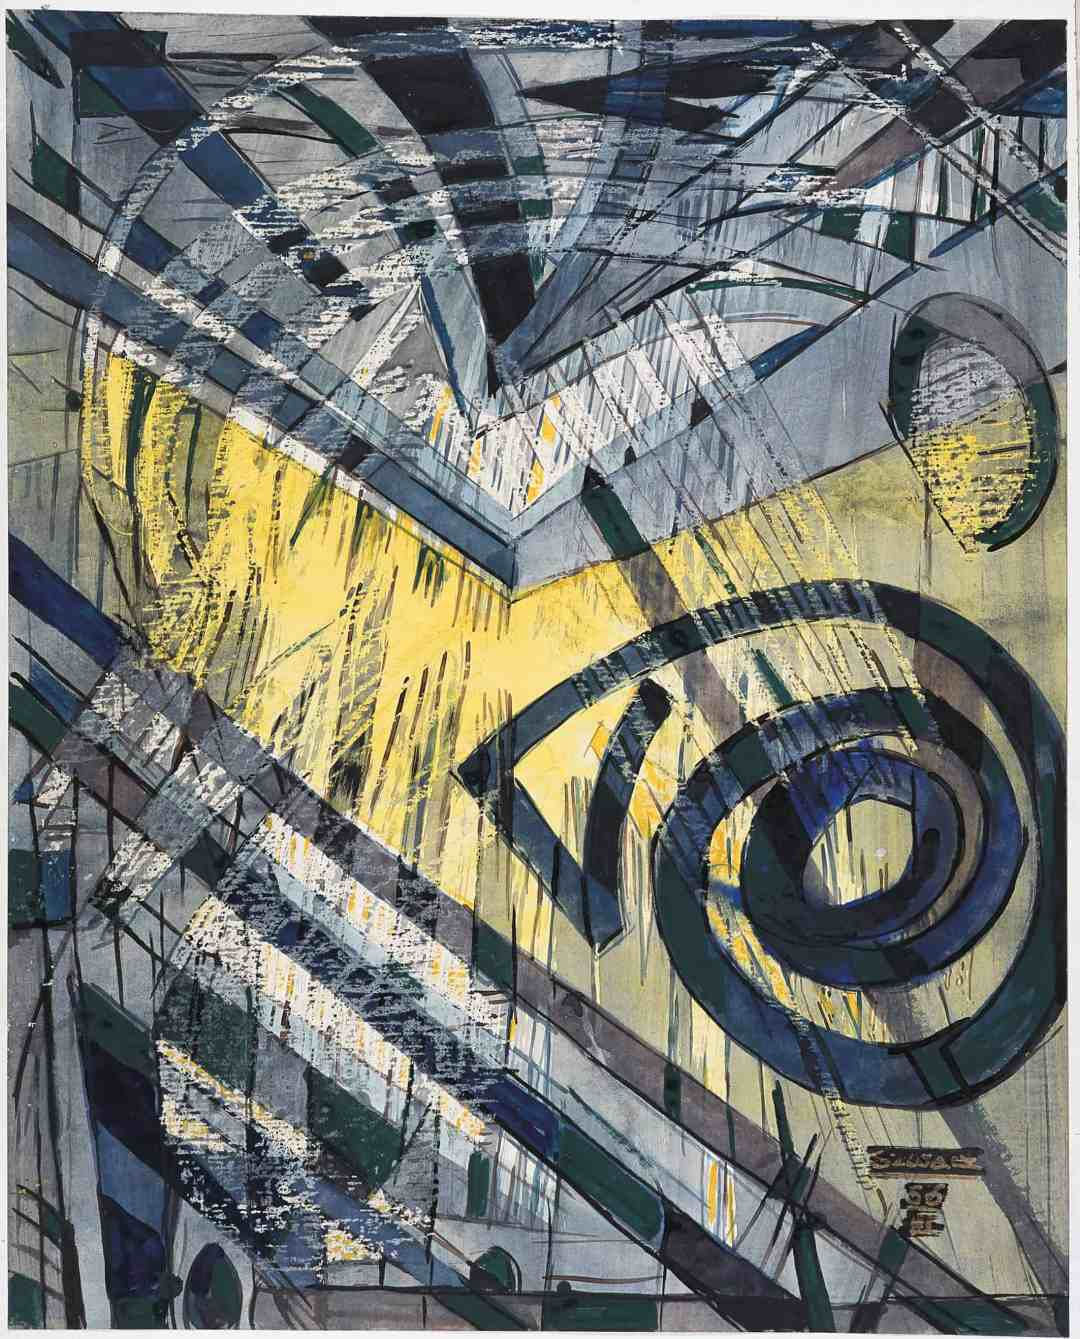 Bogusław Szwacz, Composition, 1956, ink, watercolour, tempera, pastel, paper, photograph by Zygmunt Gajewski.